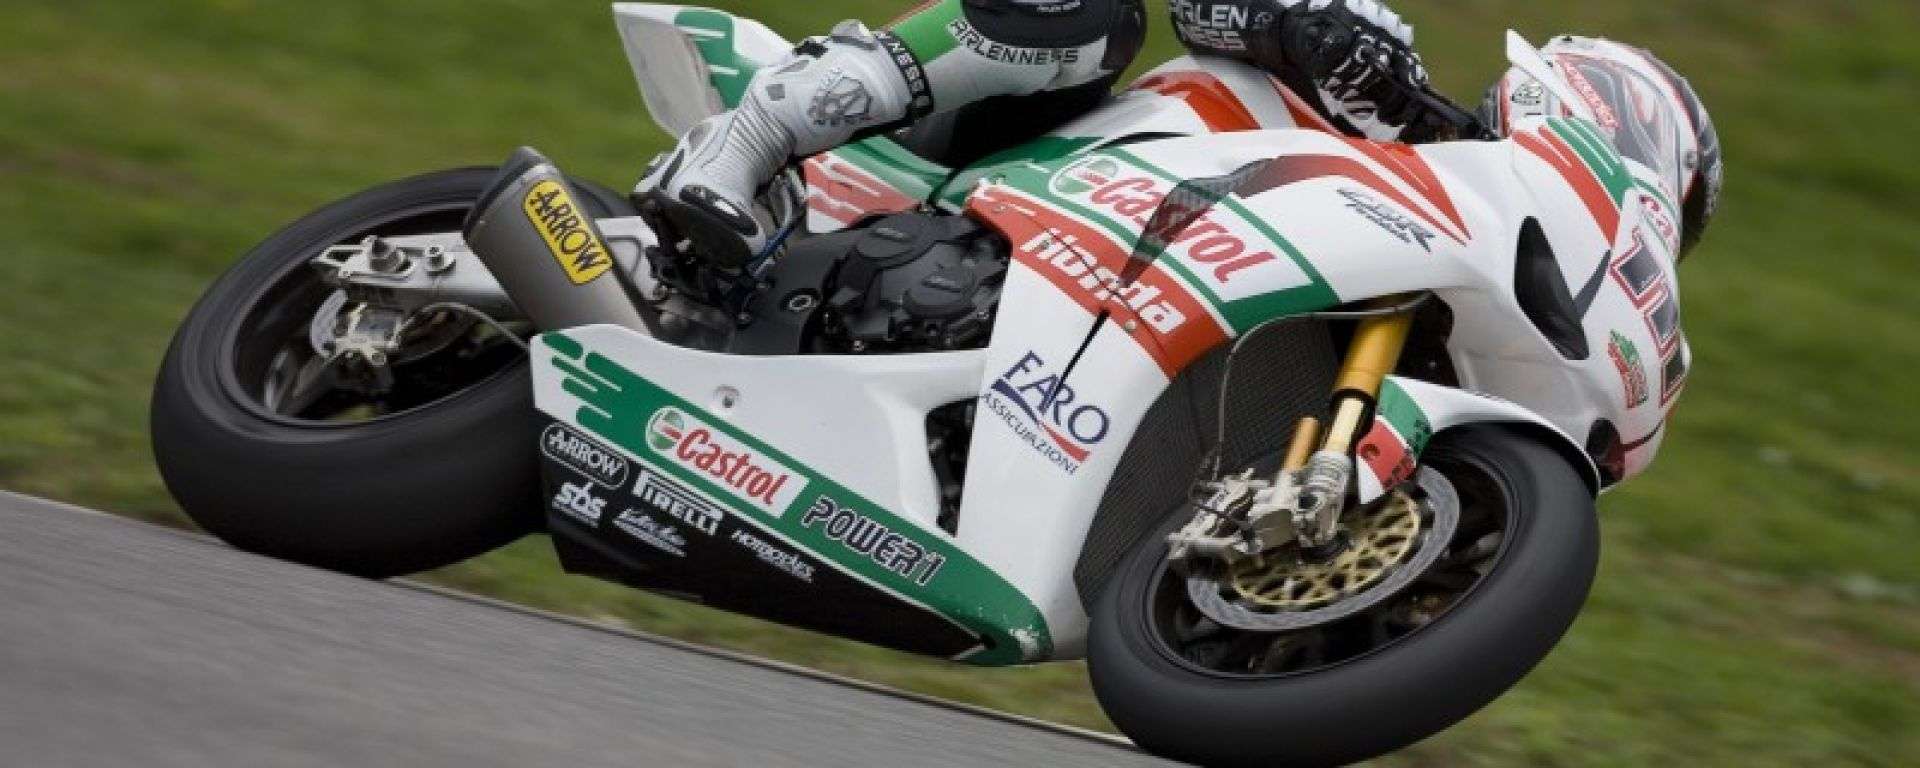 Honda Castrol Team Video ufficiale